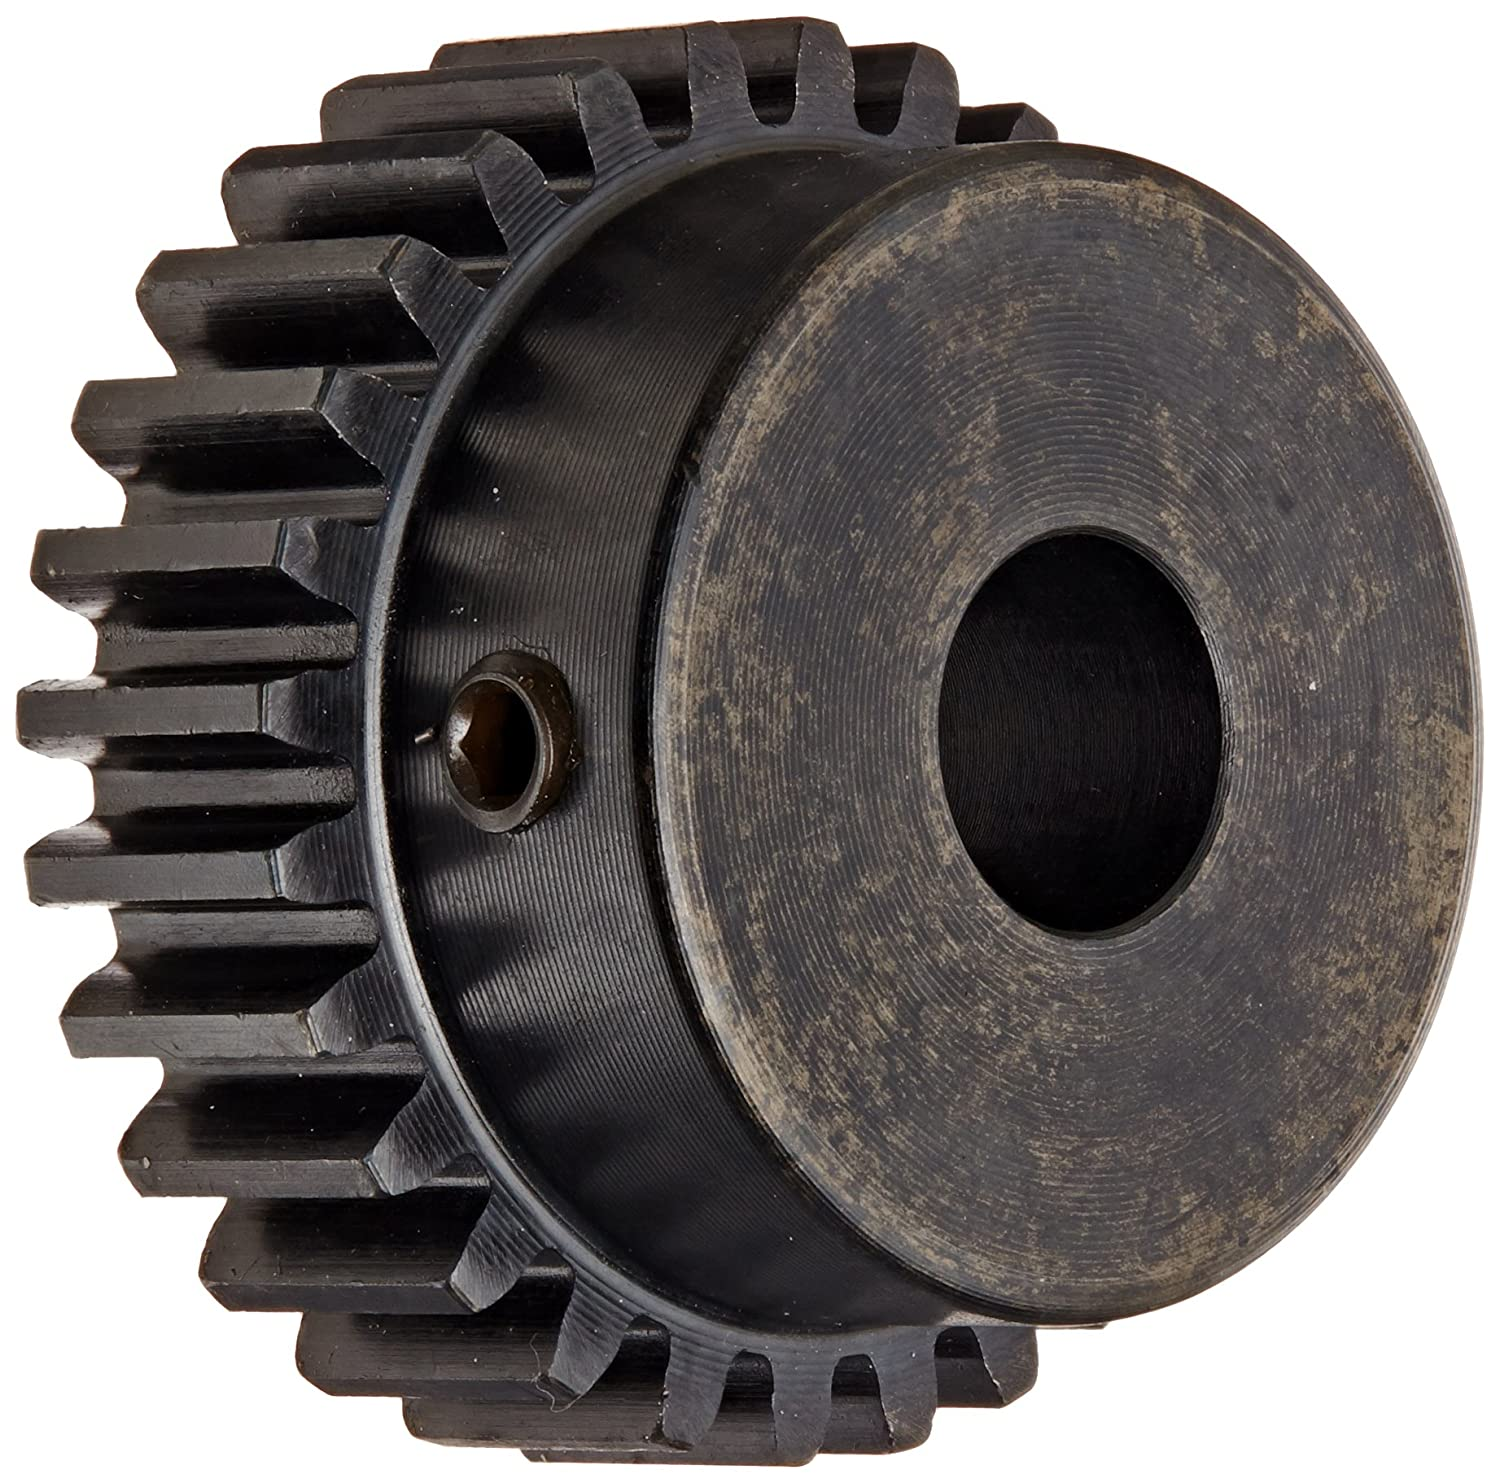 Martin S1630 Spur Gear 14.5° Pressure Angle High Carbon Steel Inch 16 Pitch 1 2 Bore 2 OD 0.500 Face Width 30 Teeth